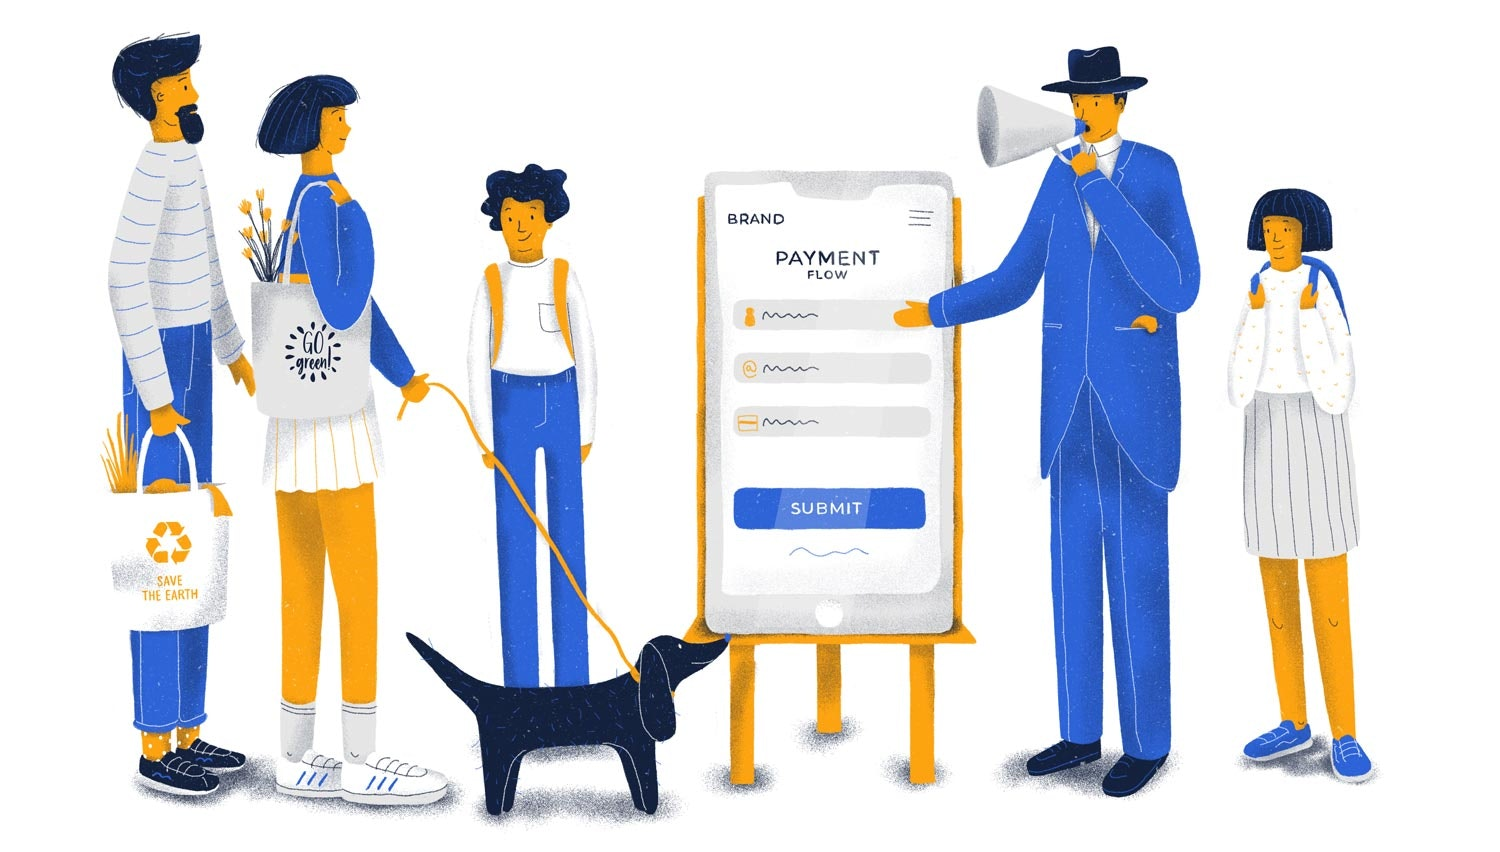 Persuasive Design: How to Nudge Users in the Right Direction